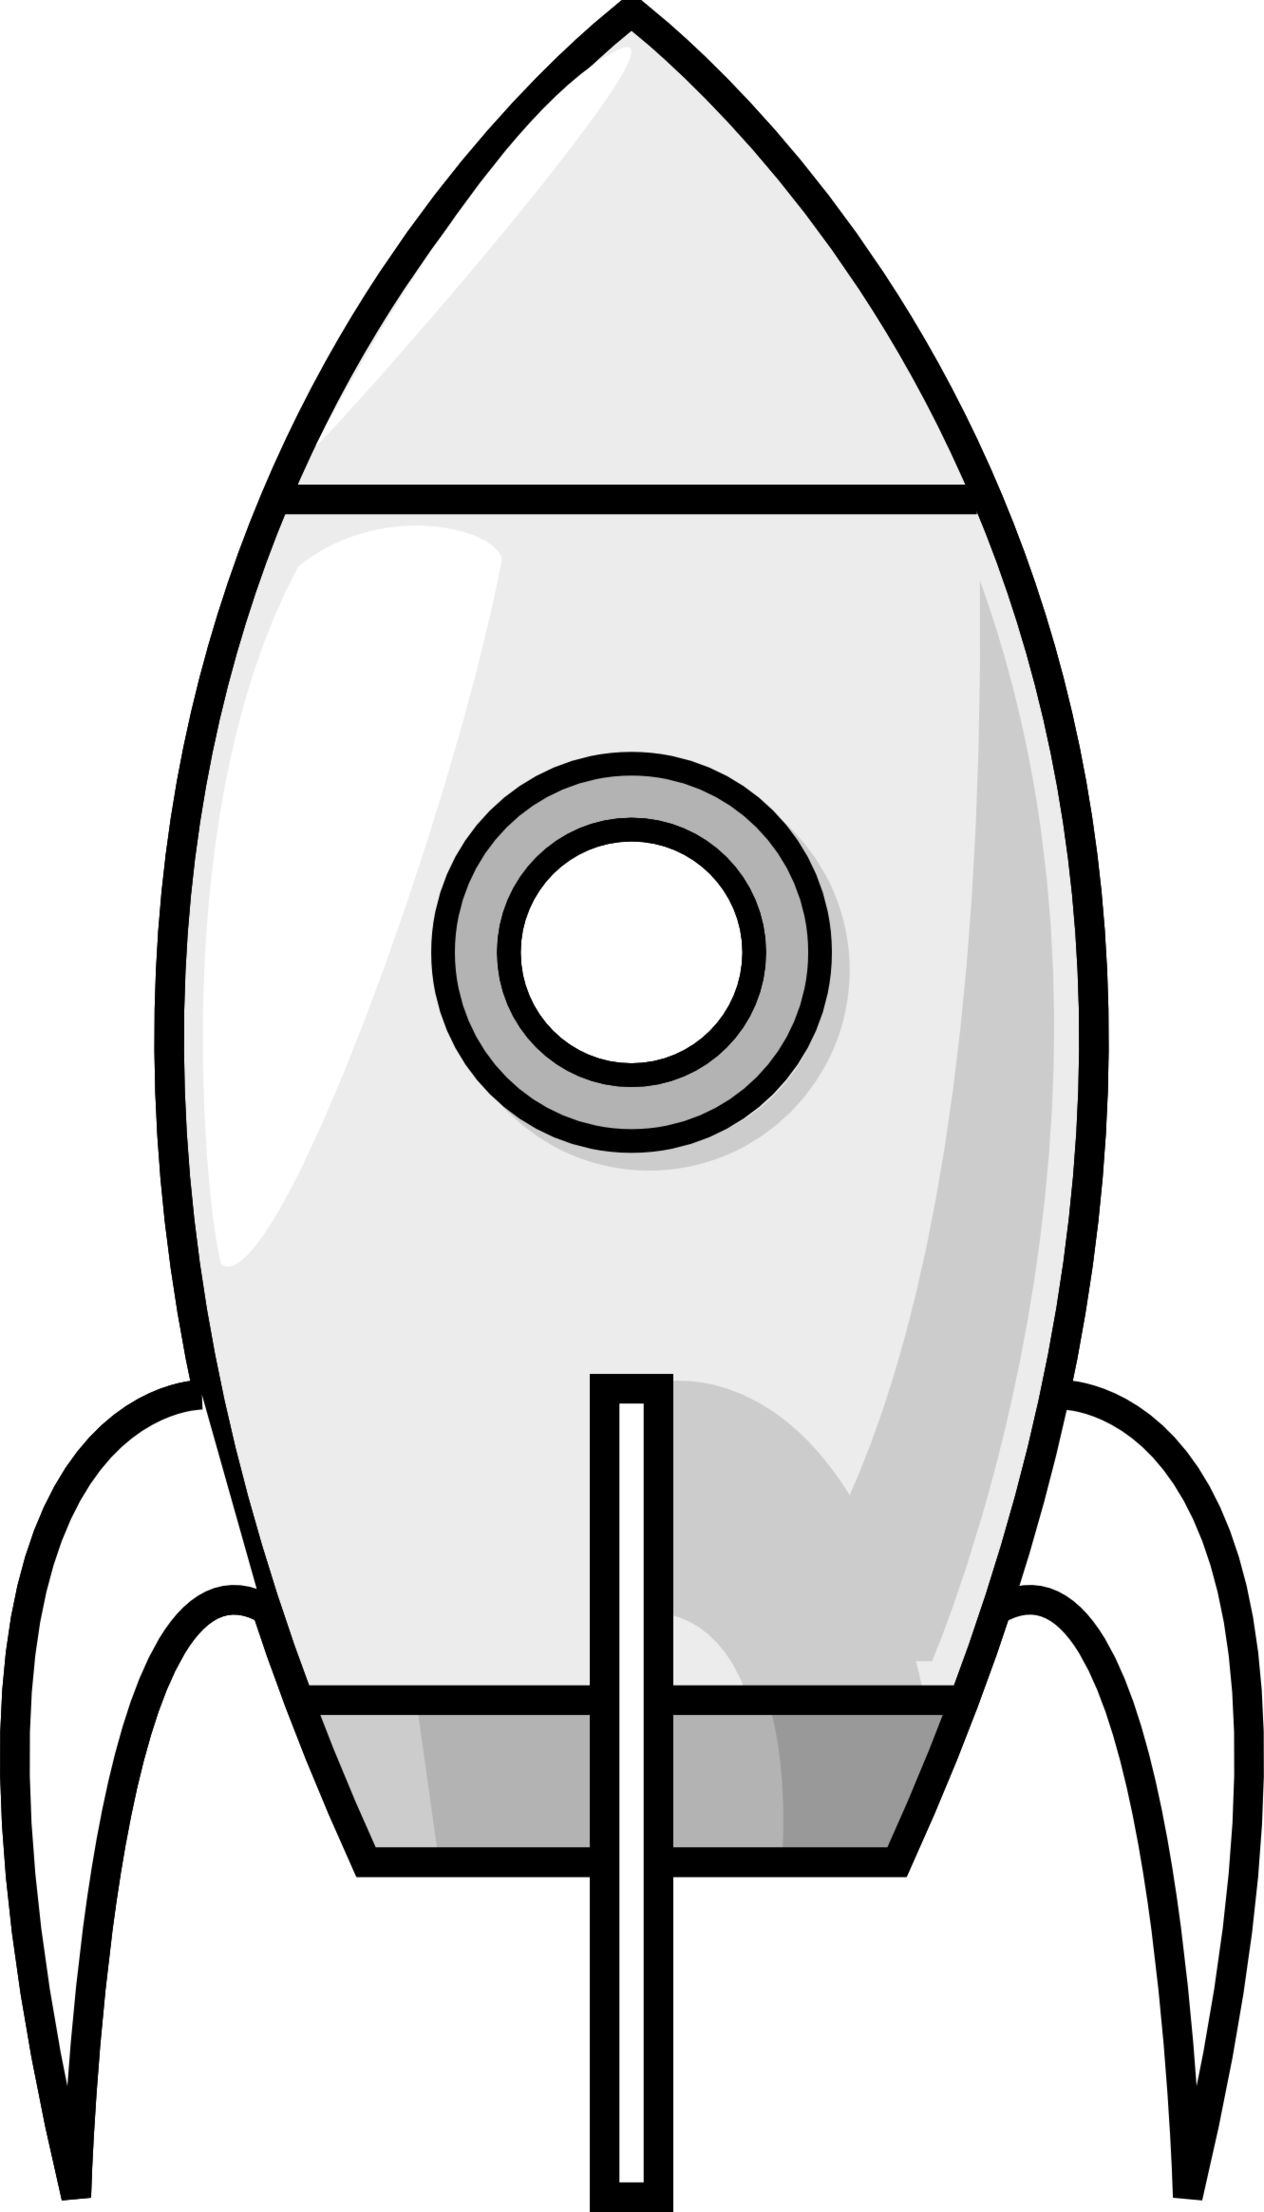 Rocket Clipart Outline.